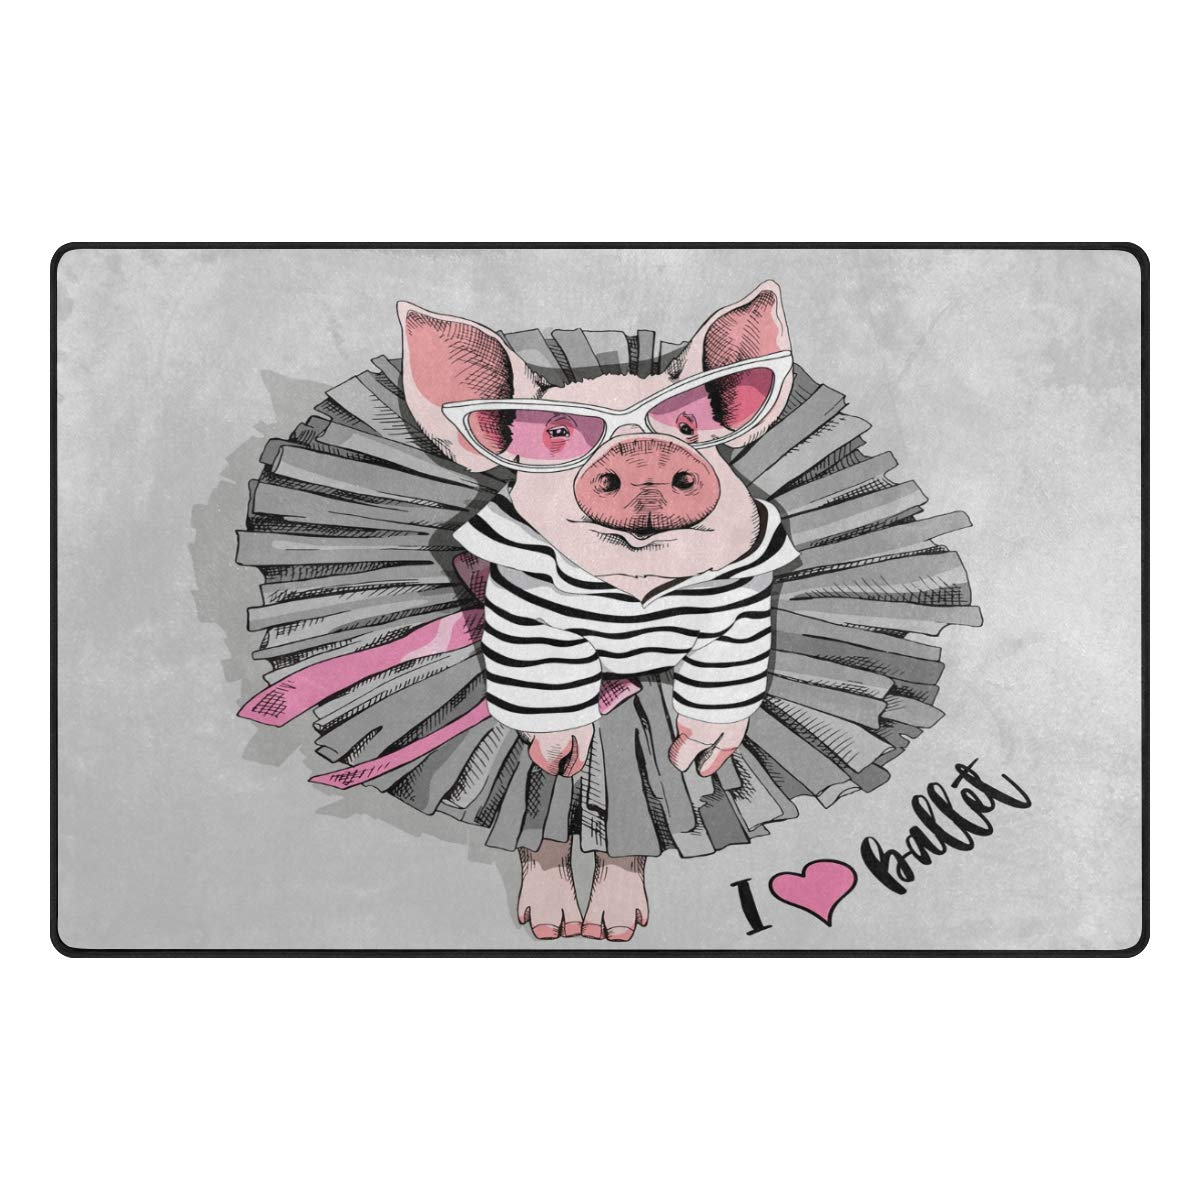 "Jpopo Cute Pig Area Rug Doormat 60"" L x 39"" W Non Slip Floor Rug Entrance Mat Indoor Bathroom Mats for Bathroom Dining Room Decorative"